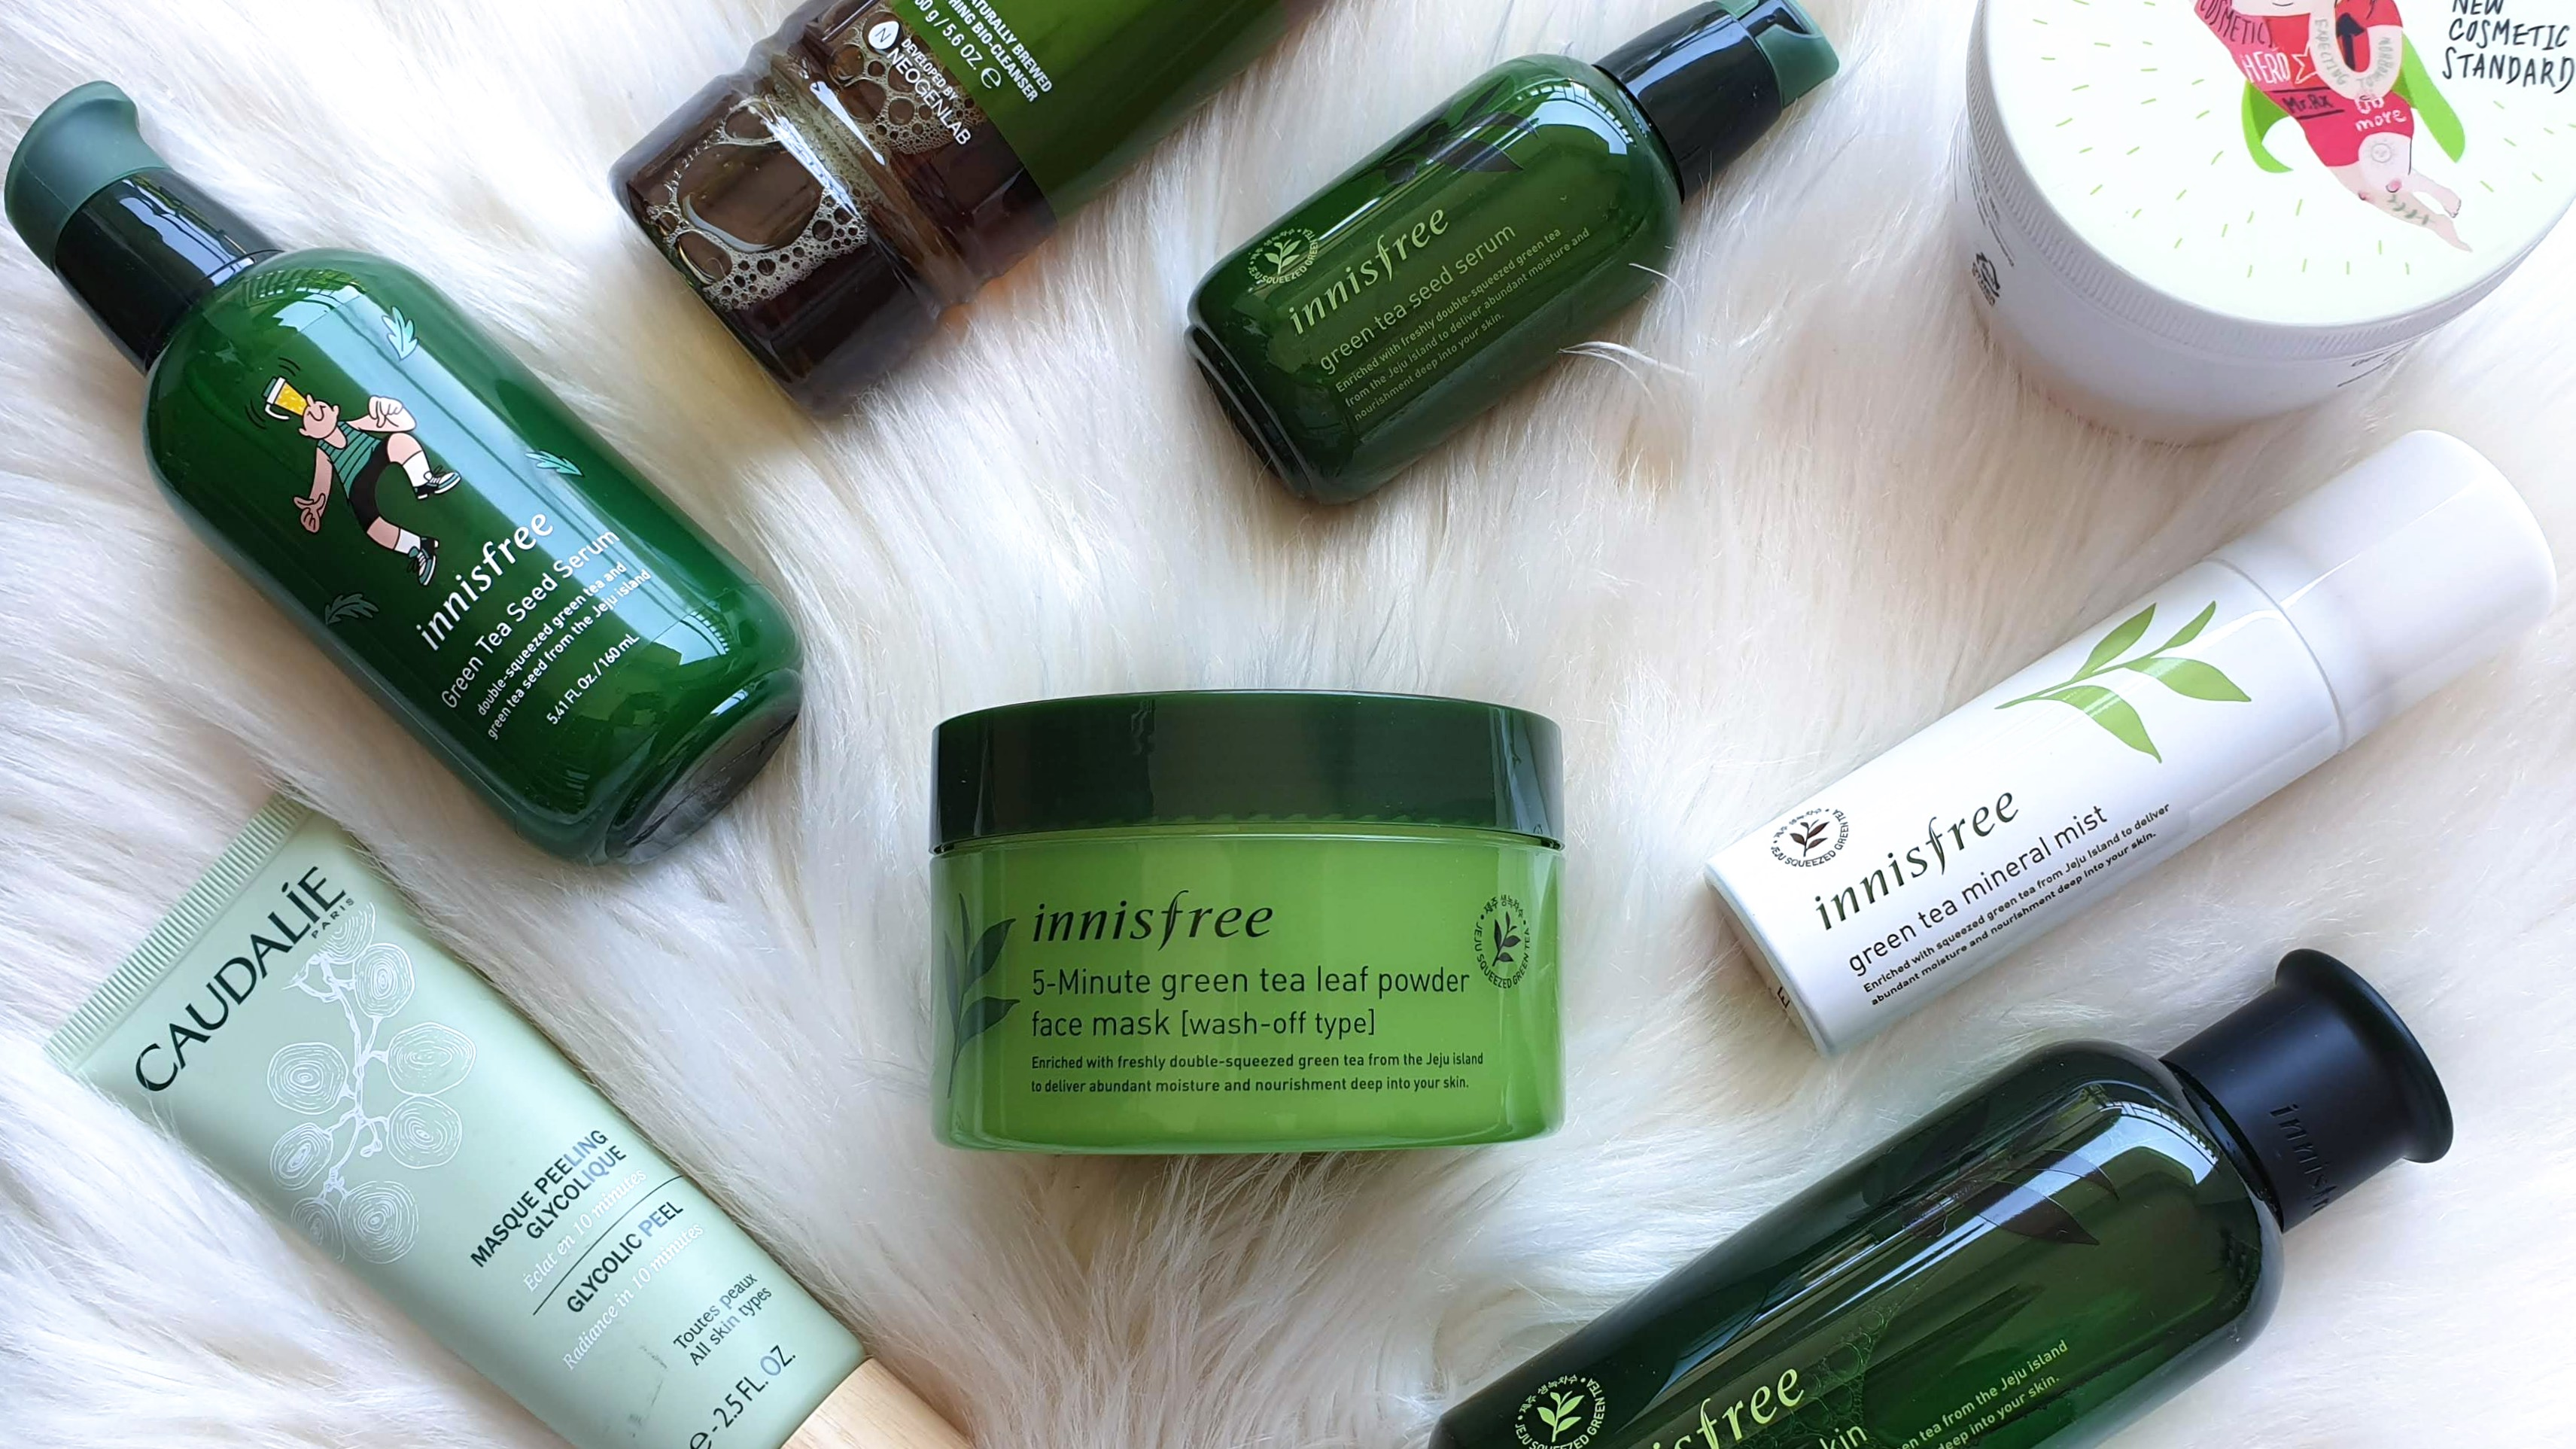 Innisfree 5-Minute Green Tea Leaf Powder Face Mask (Wash-Off Type) | Review